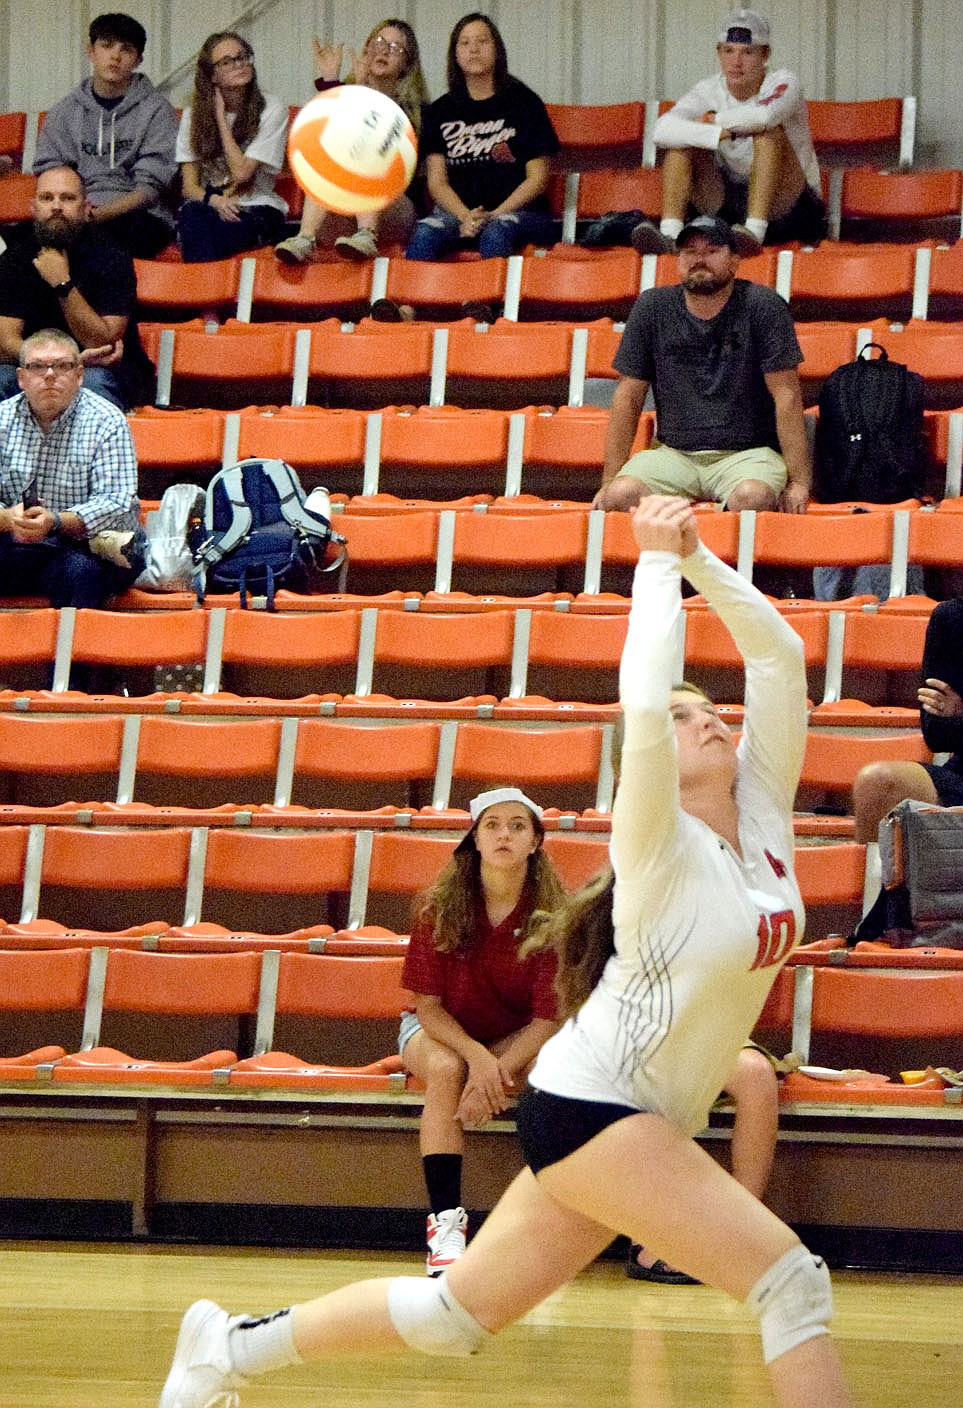 Westside Eagle Observer/MIKE ECKELS After chasing the ball into the Lady Lion back court, Keeley Elsea manages to hit it back to the front line where a team mate sent it over the net during the third set of the Gravette-Berryville varsity volleyball match in Gravette Thursday night. The Lady Lions claimed the win in three sets over the Lady Bobcats.